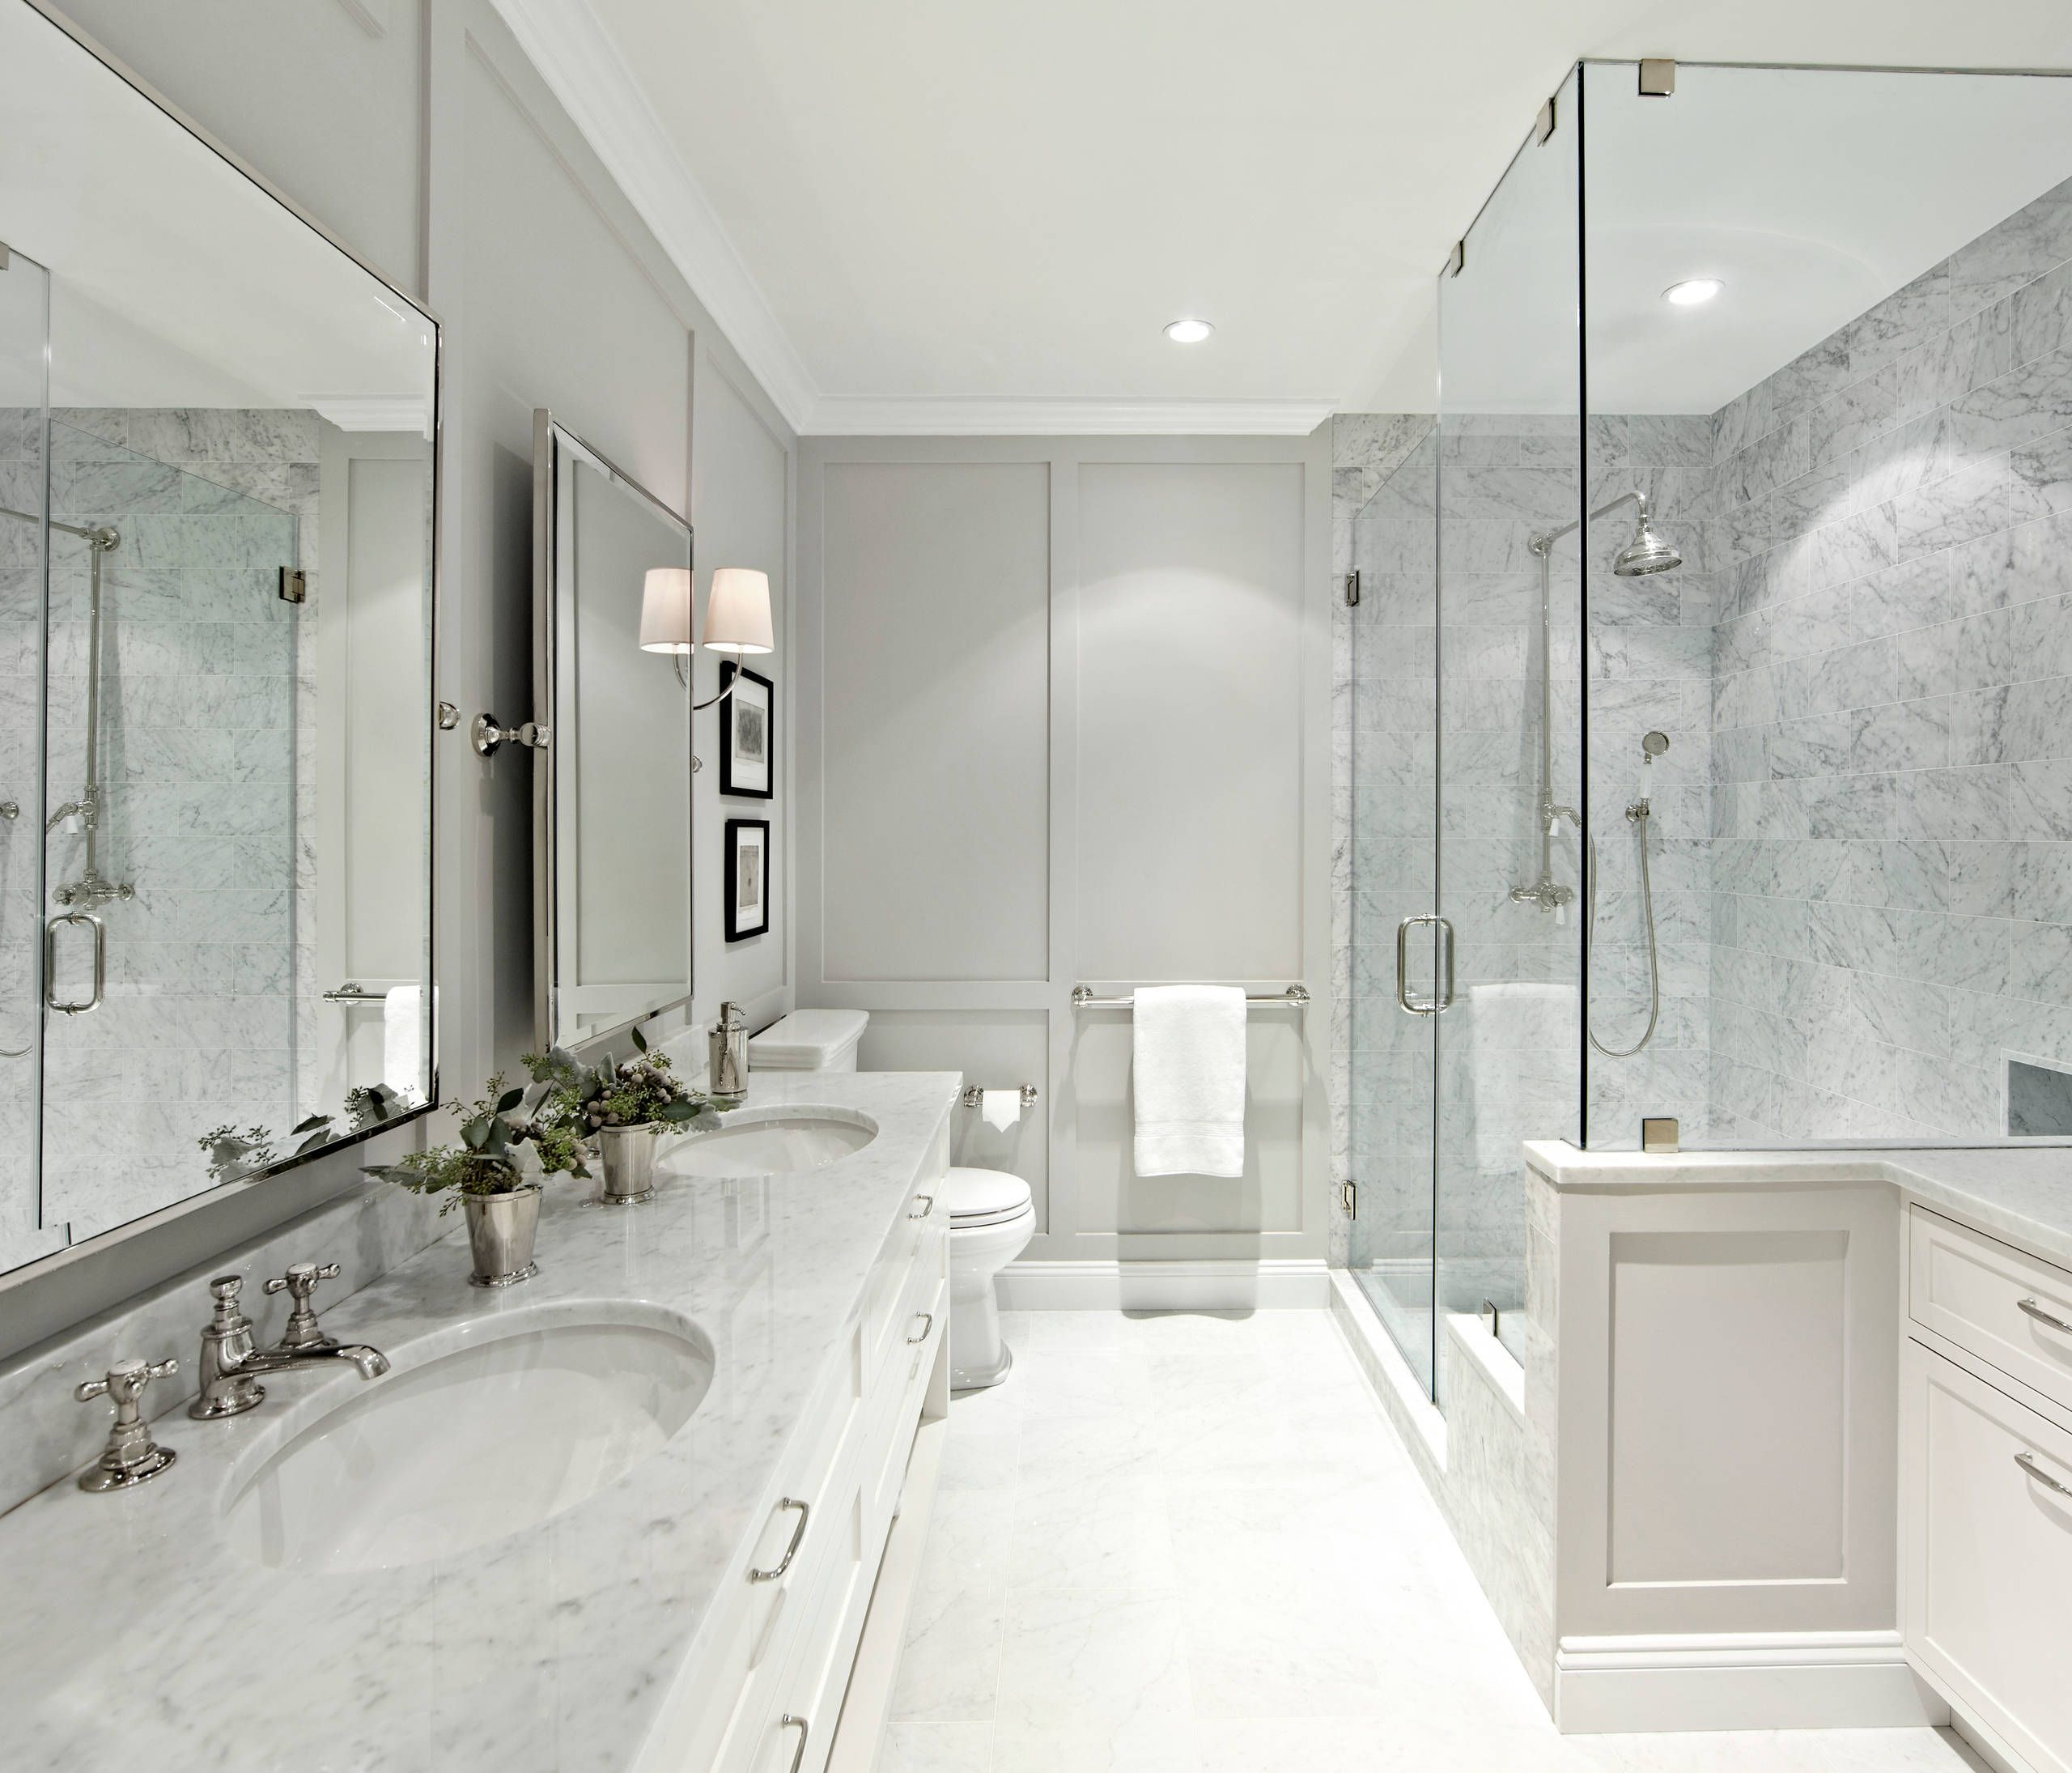 56 Ideas For An Elegant Master Bathroom